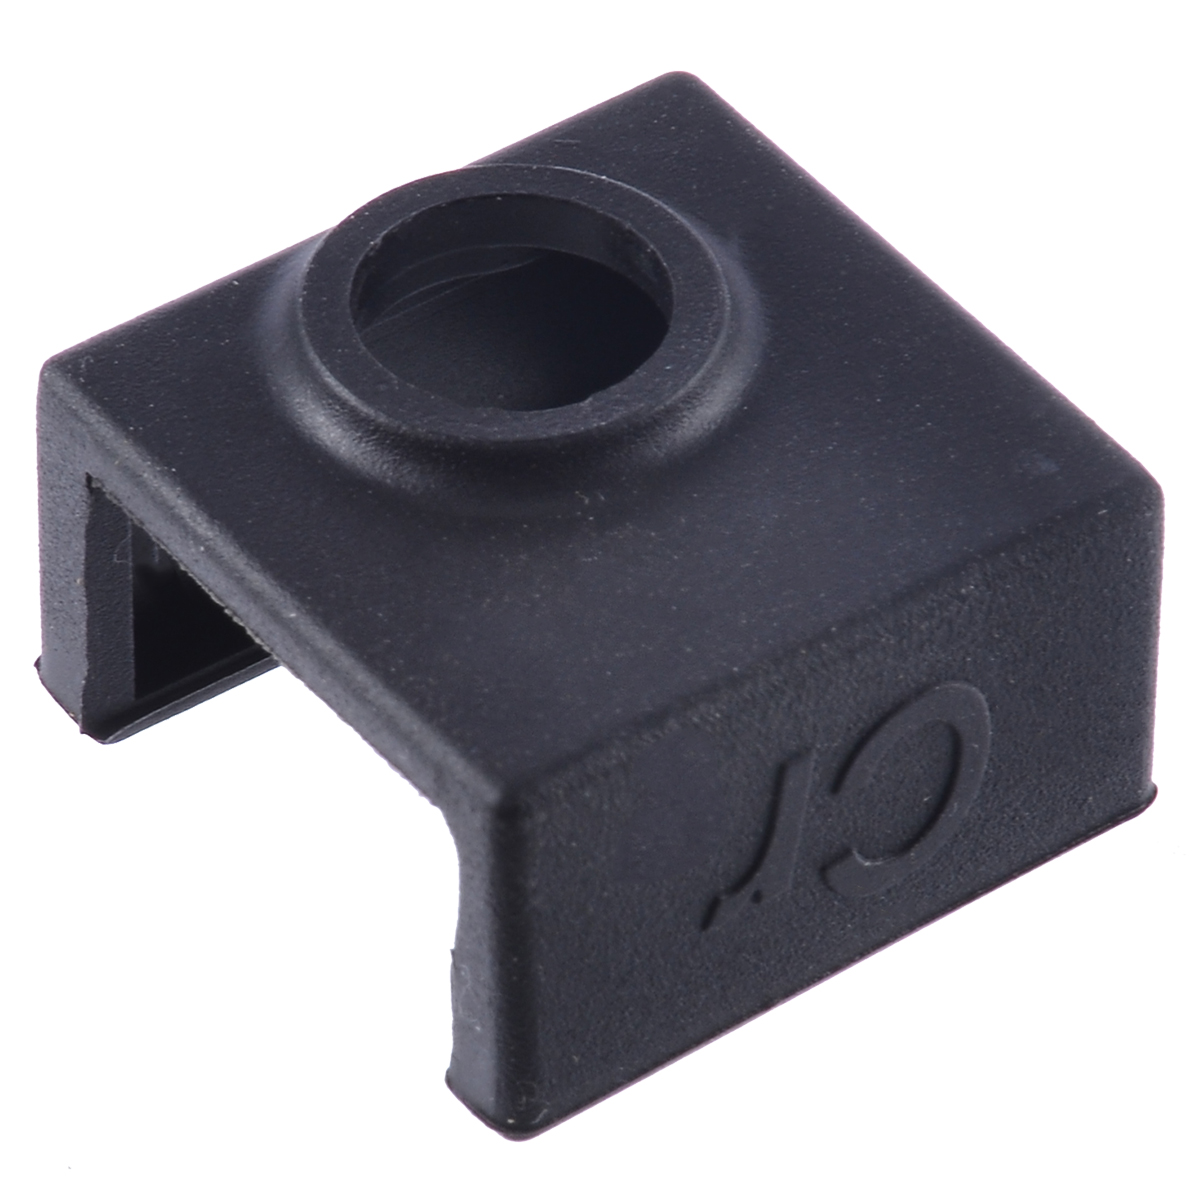 3pcs 3D Printer Parts Heater Block MK7 MK8 MK9 Hot End Protective Silicone Sock Cover Case For CR-10 10S S4 S5 Anet A8